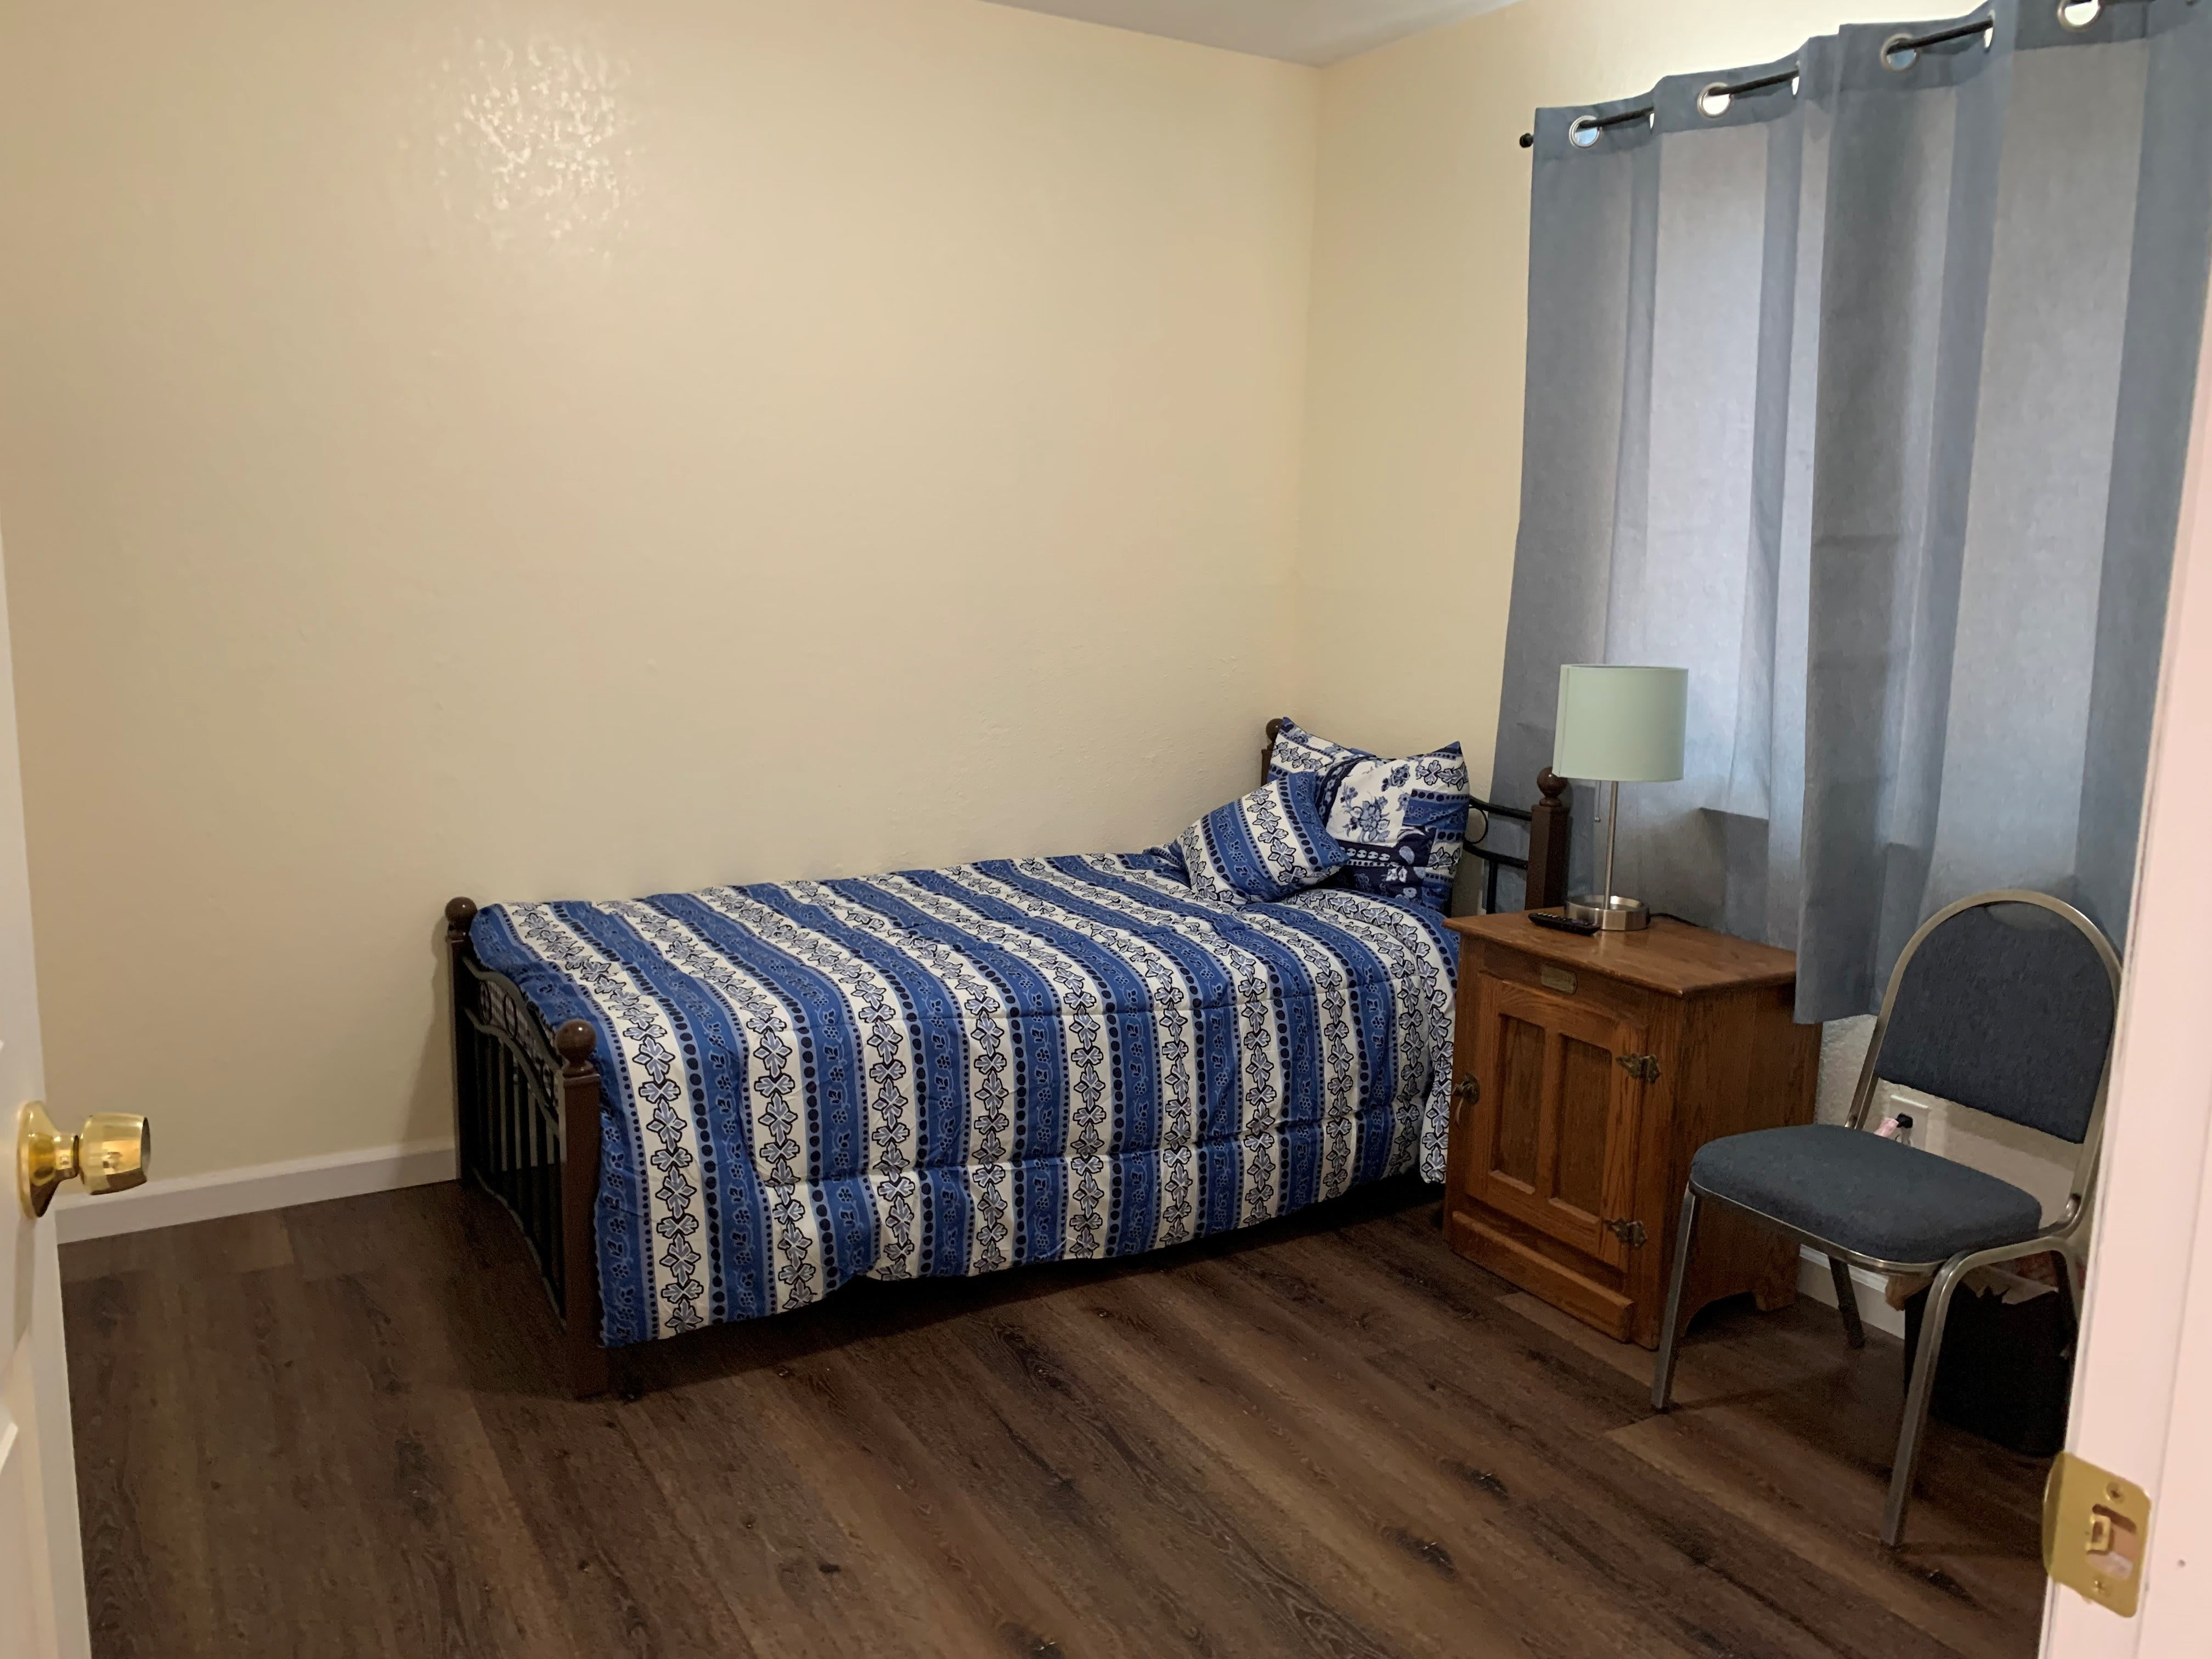 Photo 1 of Green Willow Home Care